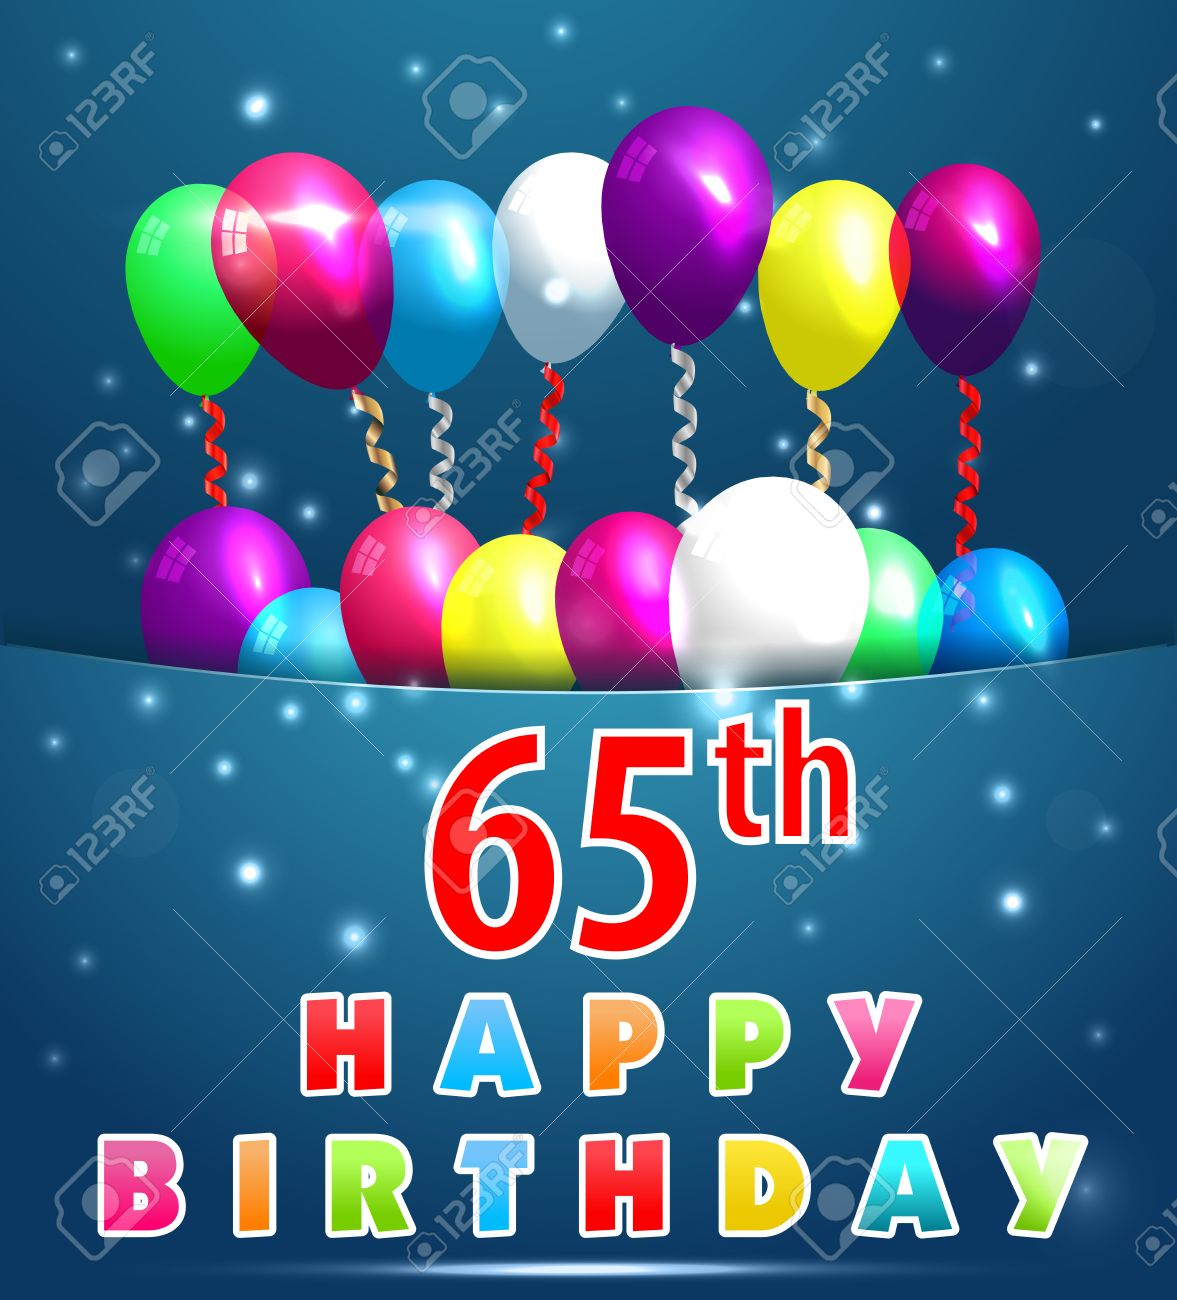 65 Year Happy Birthday Card With Balloons And Ribbons 65th Stock Vector